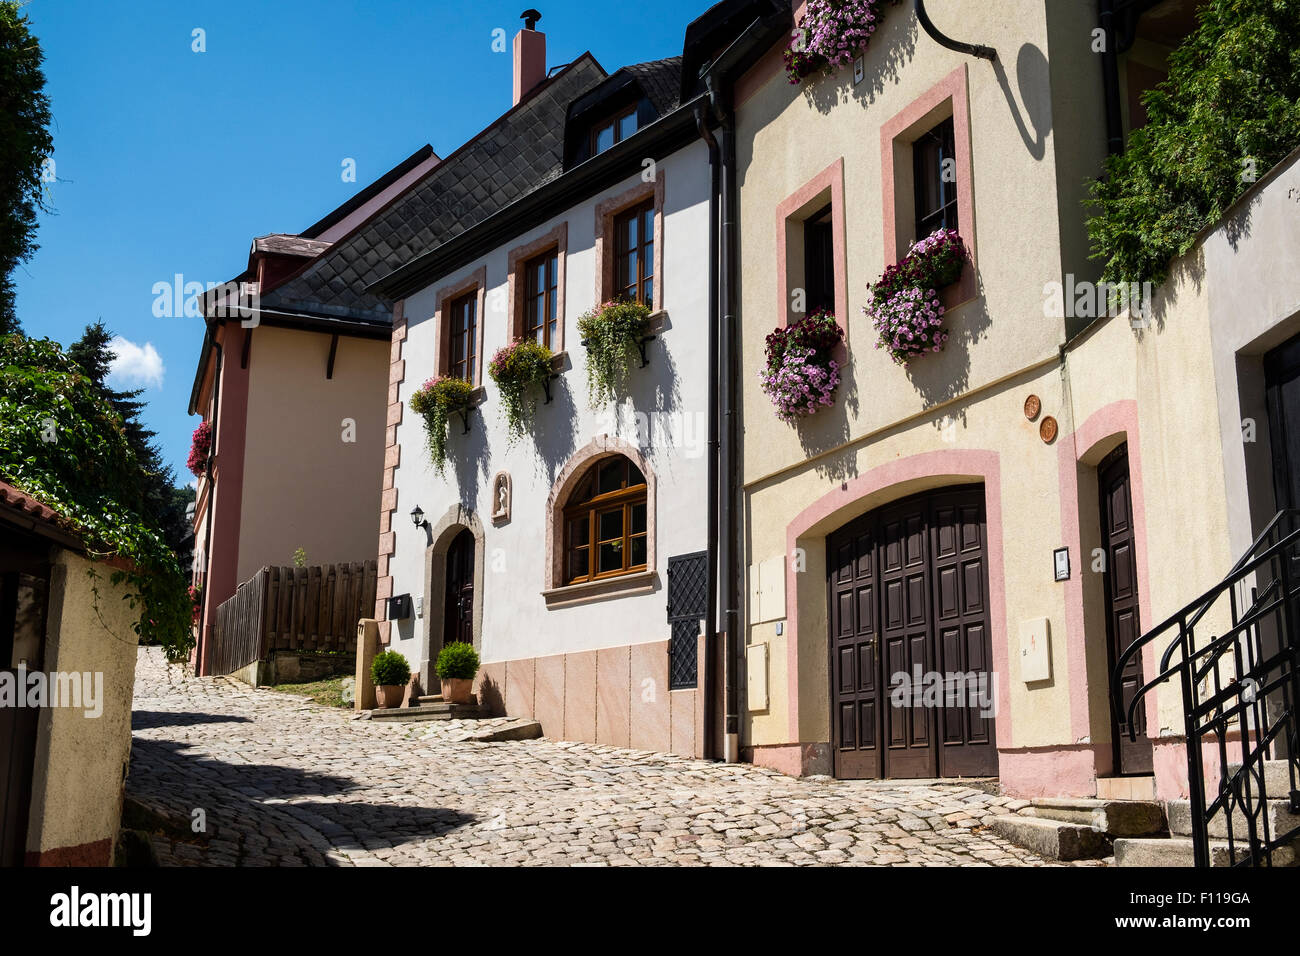 Loket (Elbow) - a town in the Sokolov District of the Czech Republic, Europe - location for the James Bond film - Stock Image